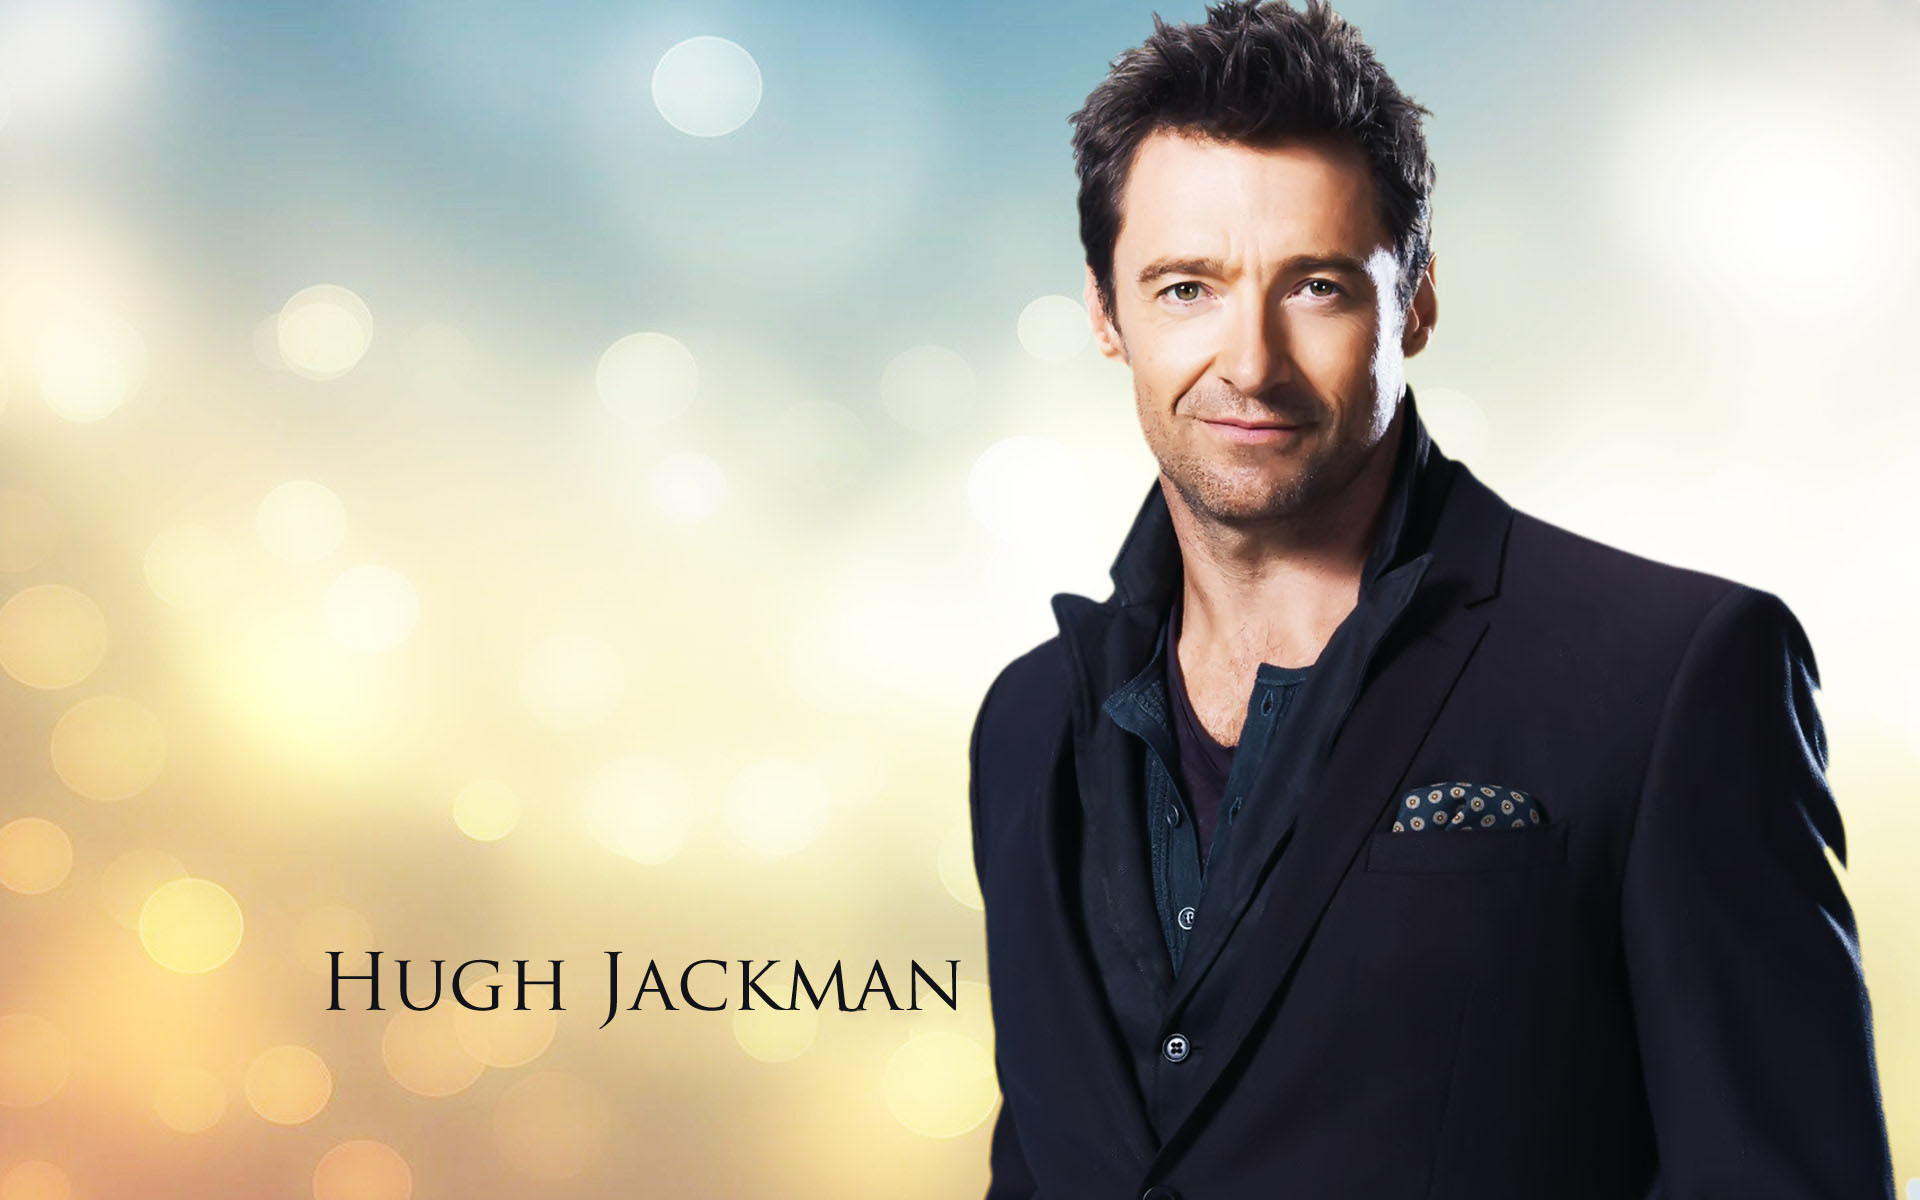 Hugh Jackman Wallpapers for iPhone Mobile and Desktop